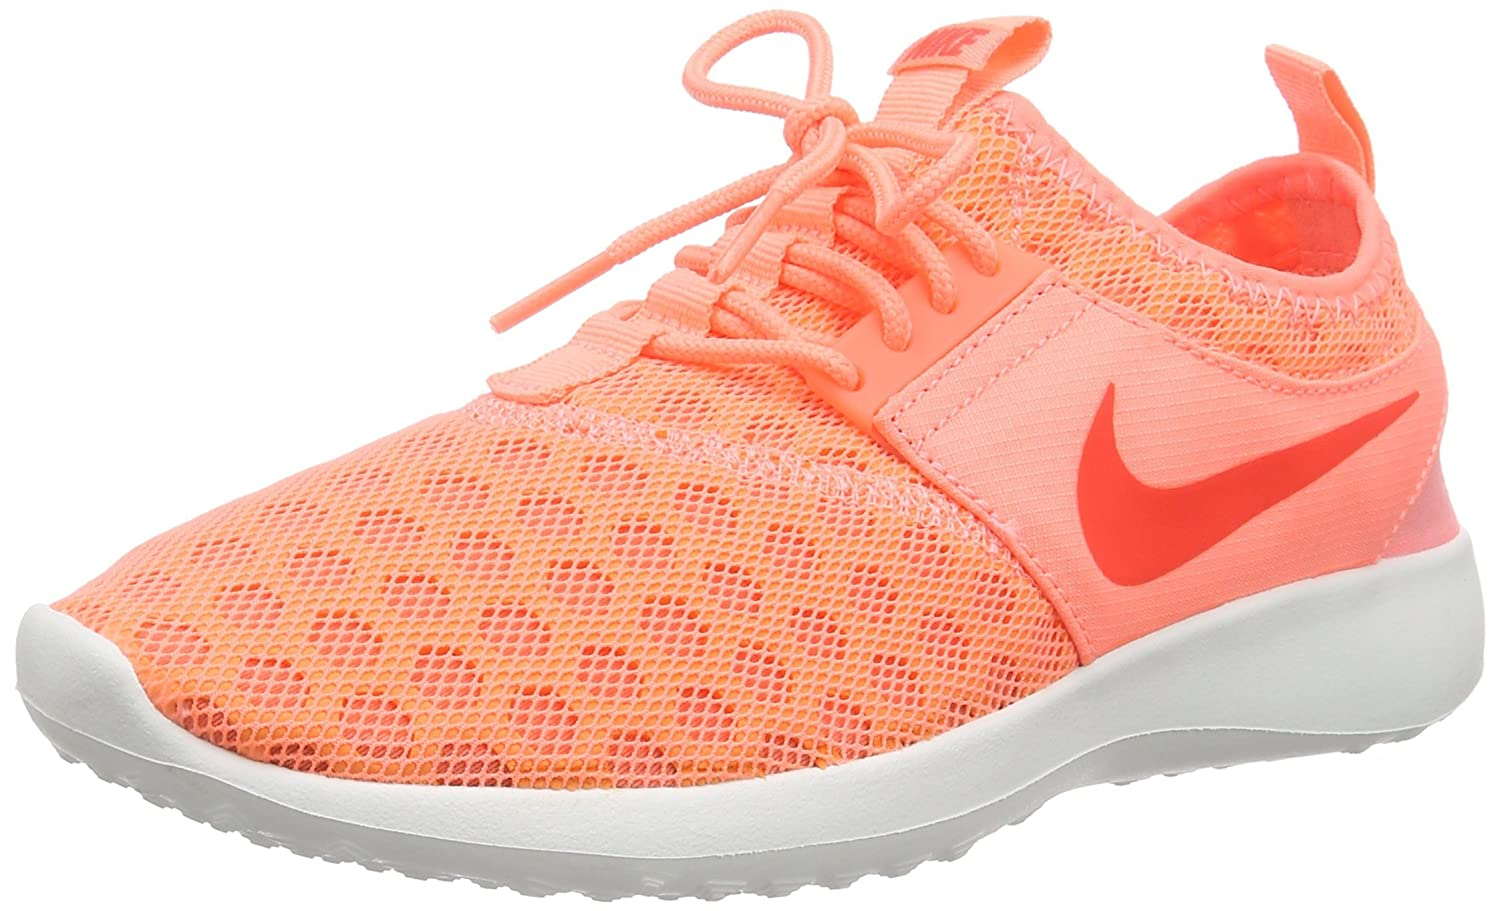 NIKE Women's Juvenate Running Shoe B00HV9LOW6 9.5 B(M) US|Atomic Pink/Bright Crimson